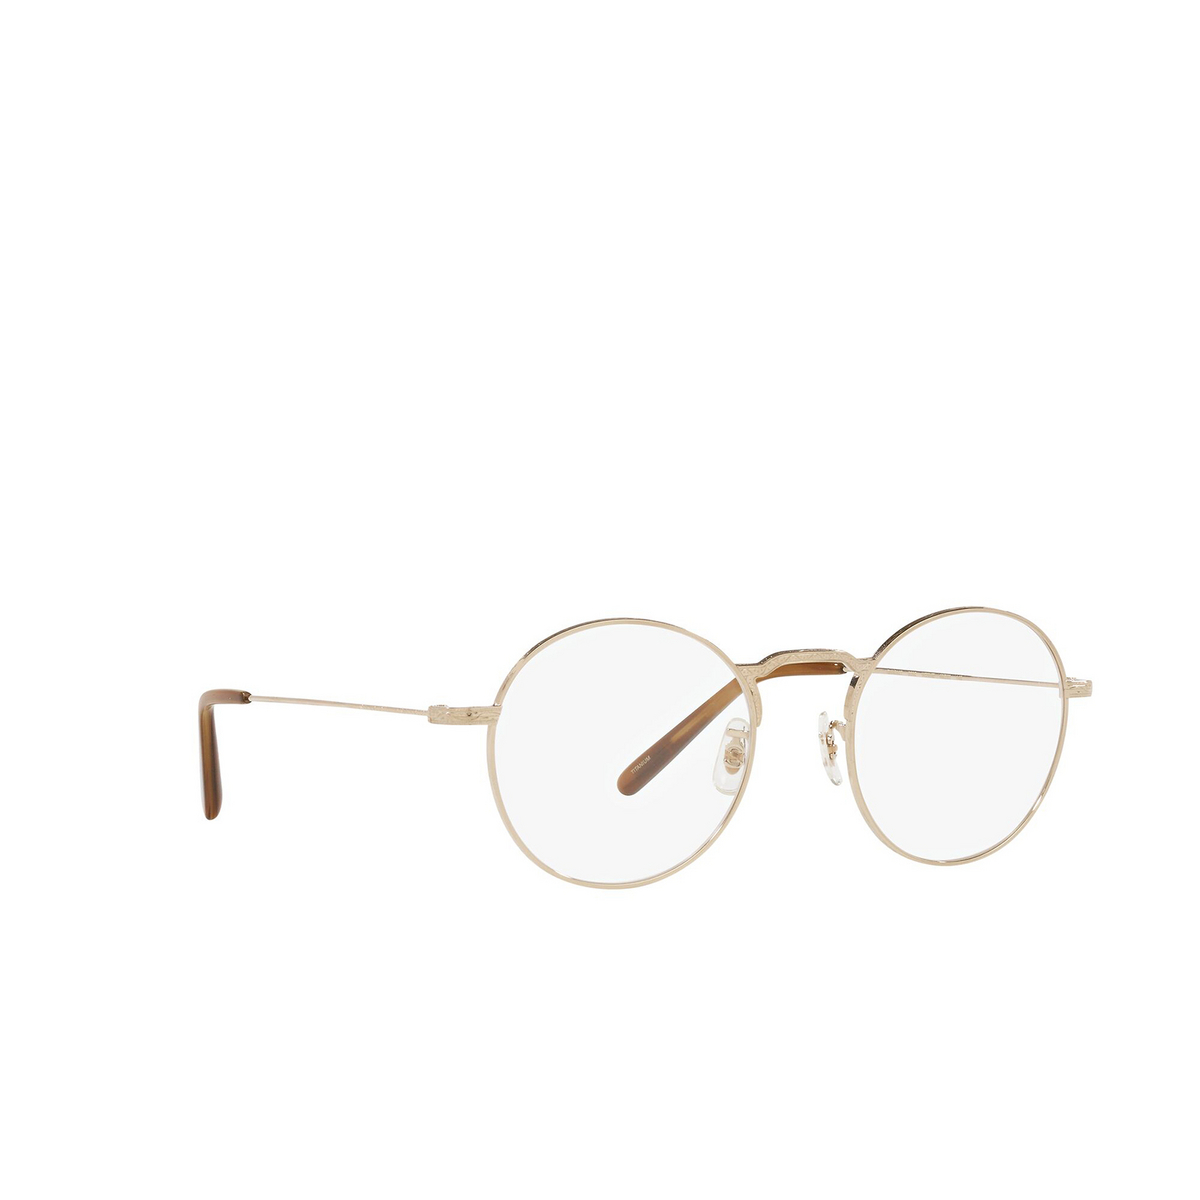 Oliver Peoples® Round Eyeglasses: Weslie OV1282T color White Gold 5292 - three-quarters view.